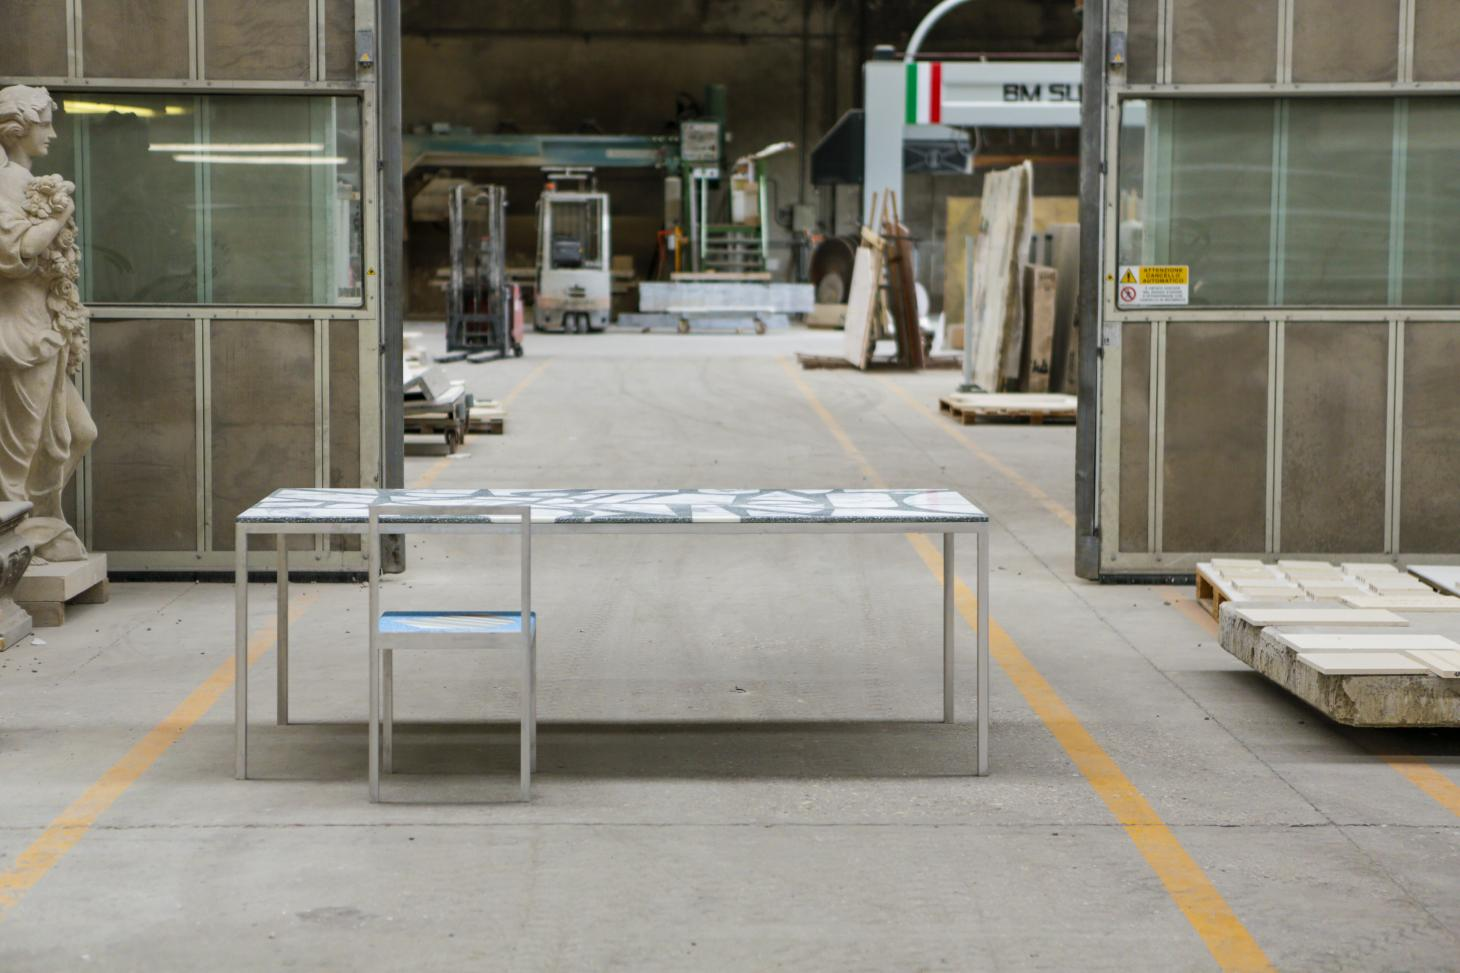 Table and chair by Stefan Scholten seen in factory and designed using offcuts of marble